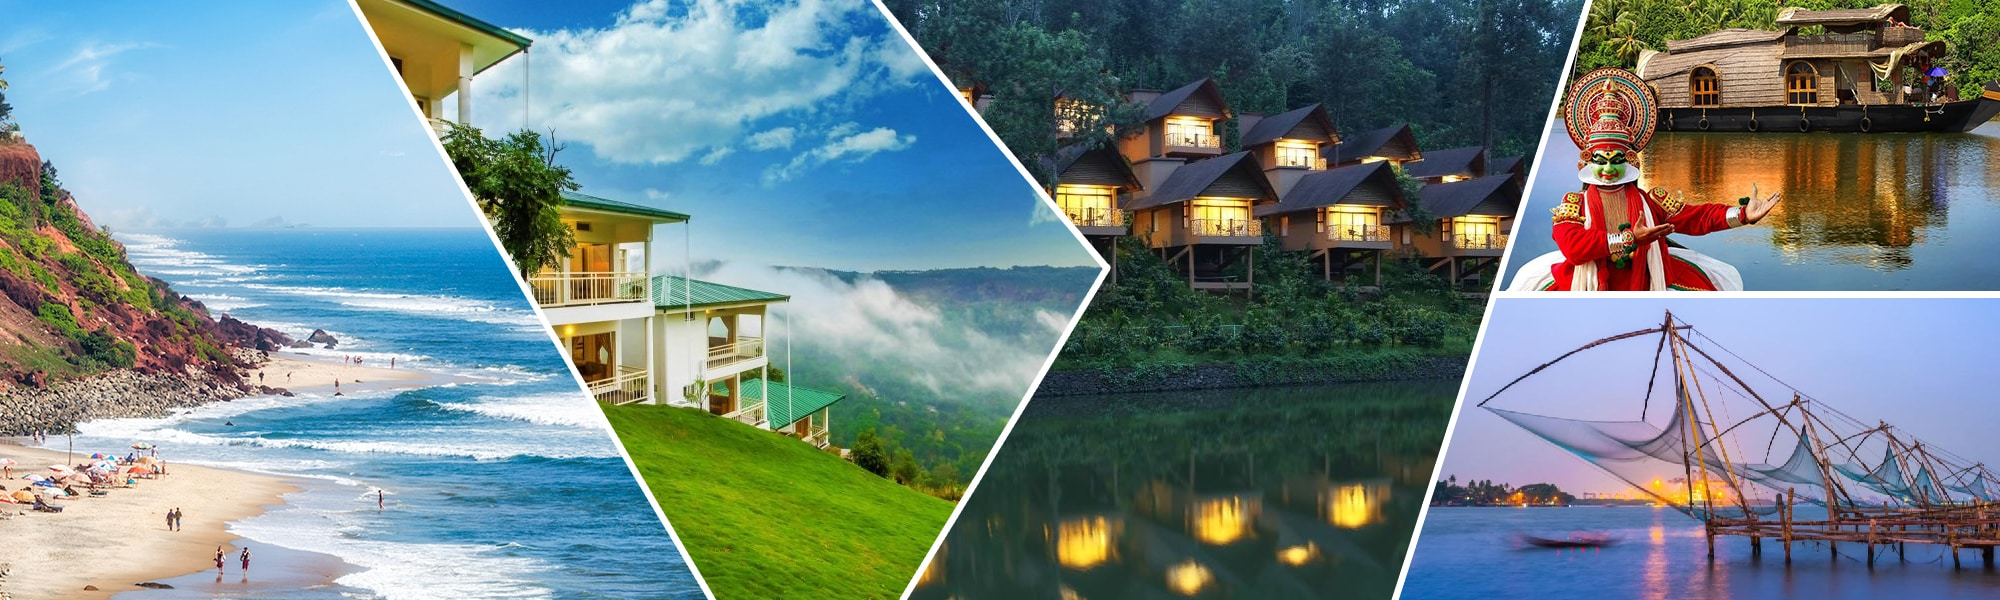 Munnar, Thekkady, Alappuzha and Kochi – Funday Honeymoon Package Tour